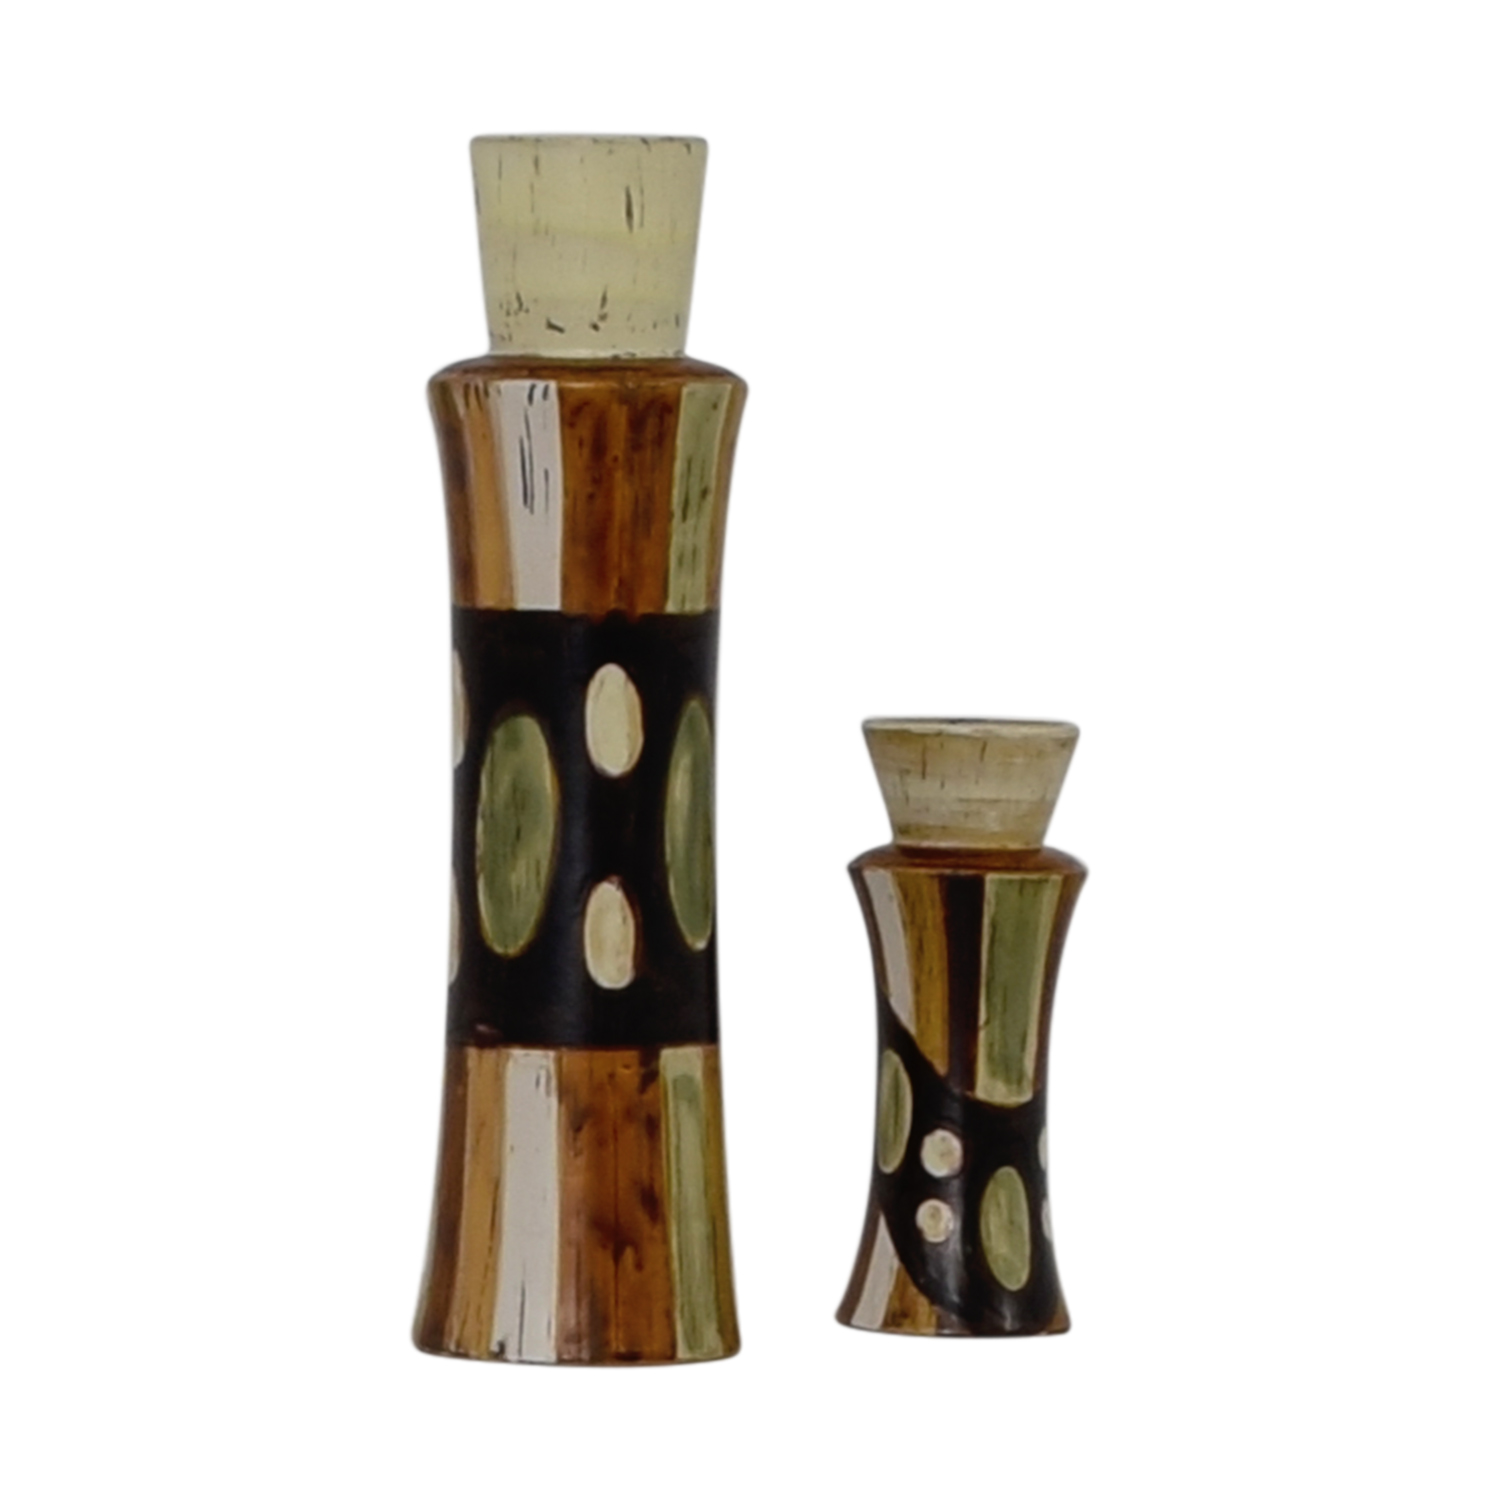 HomeGoods Ceramic Vase and Pillar Candle Holder / Decor